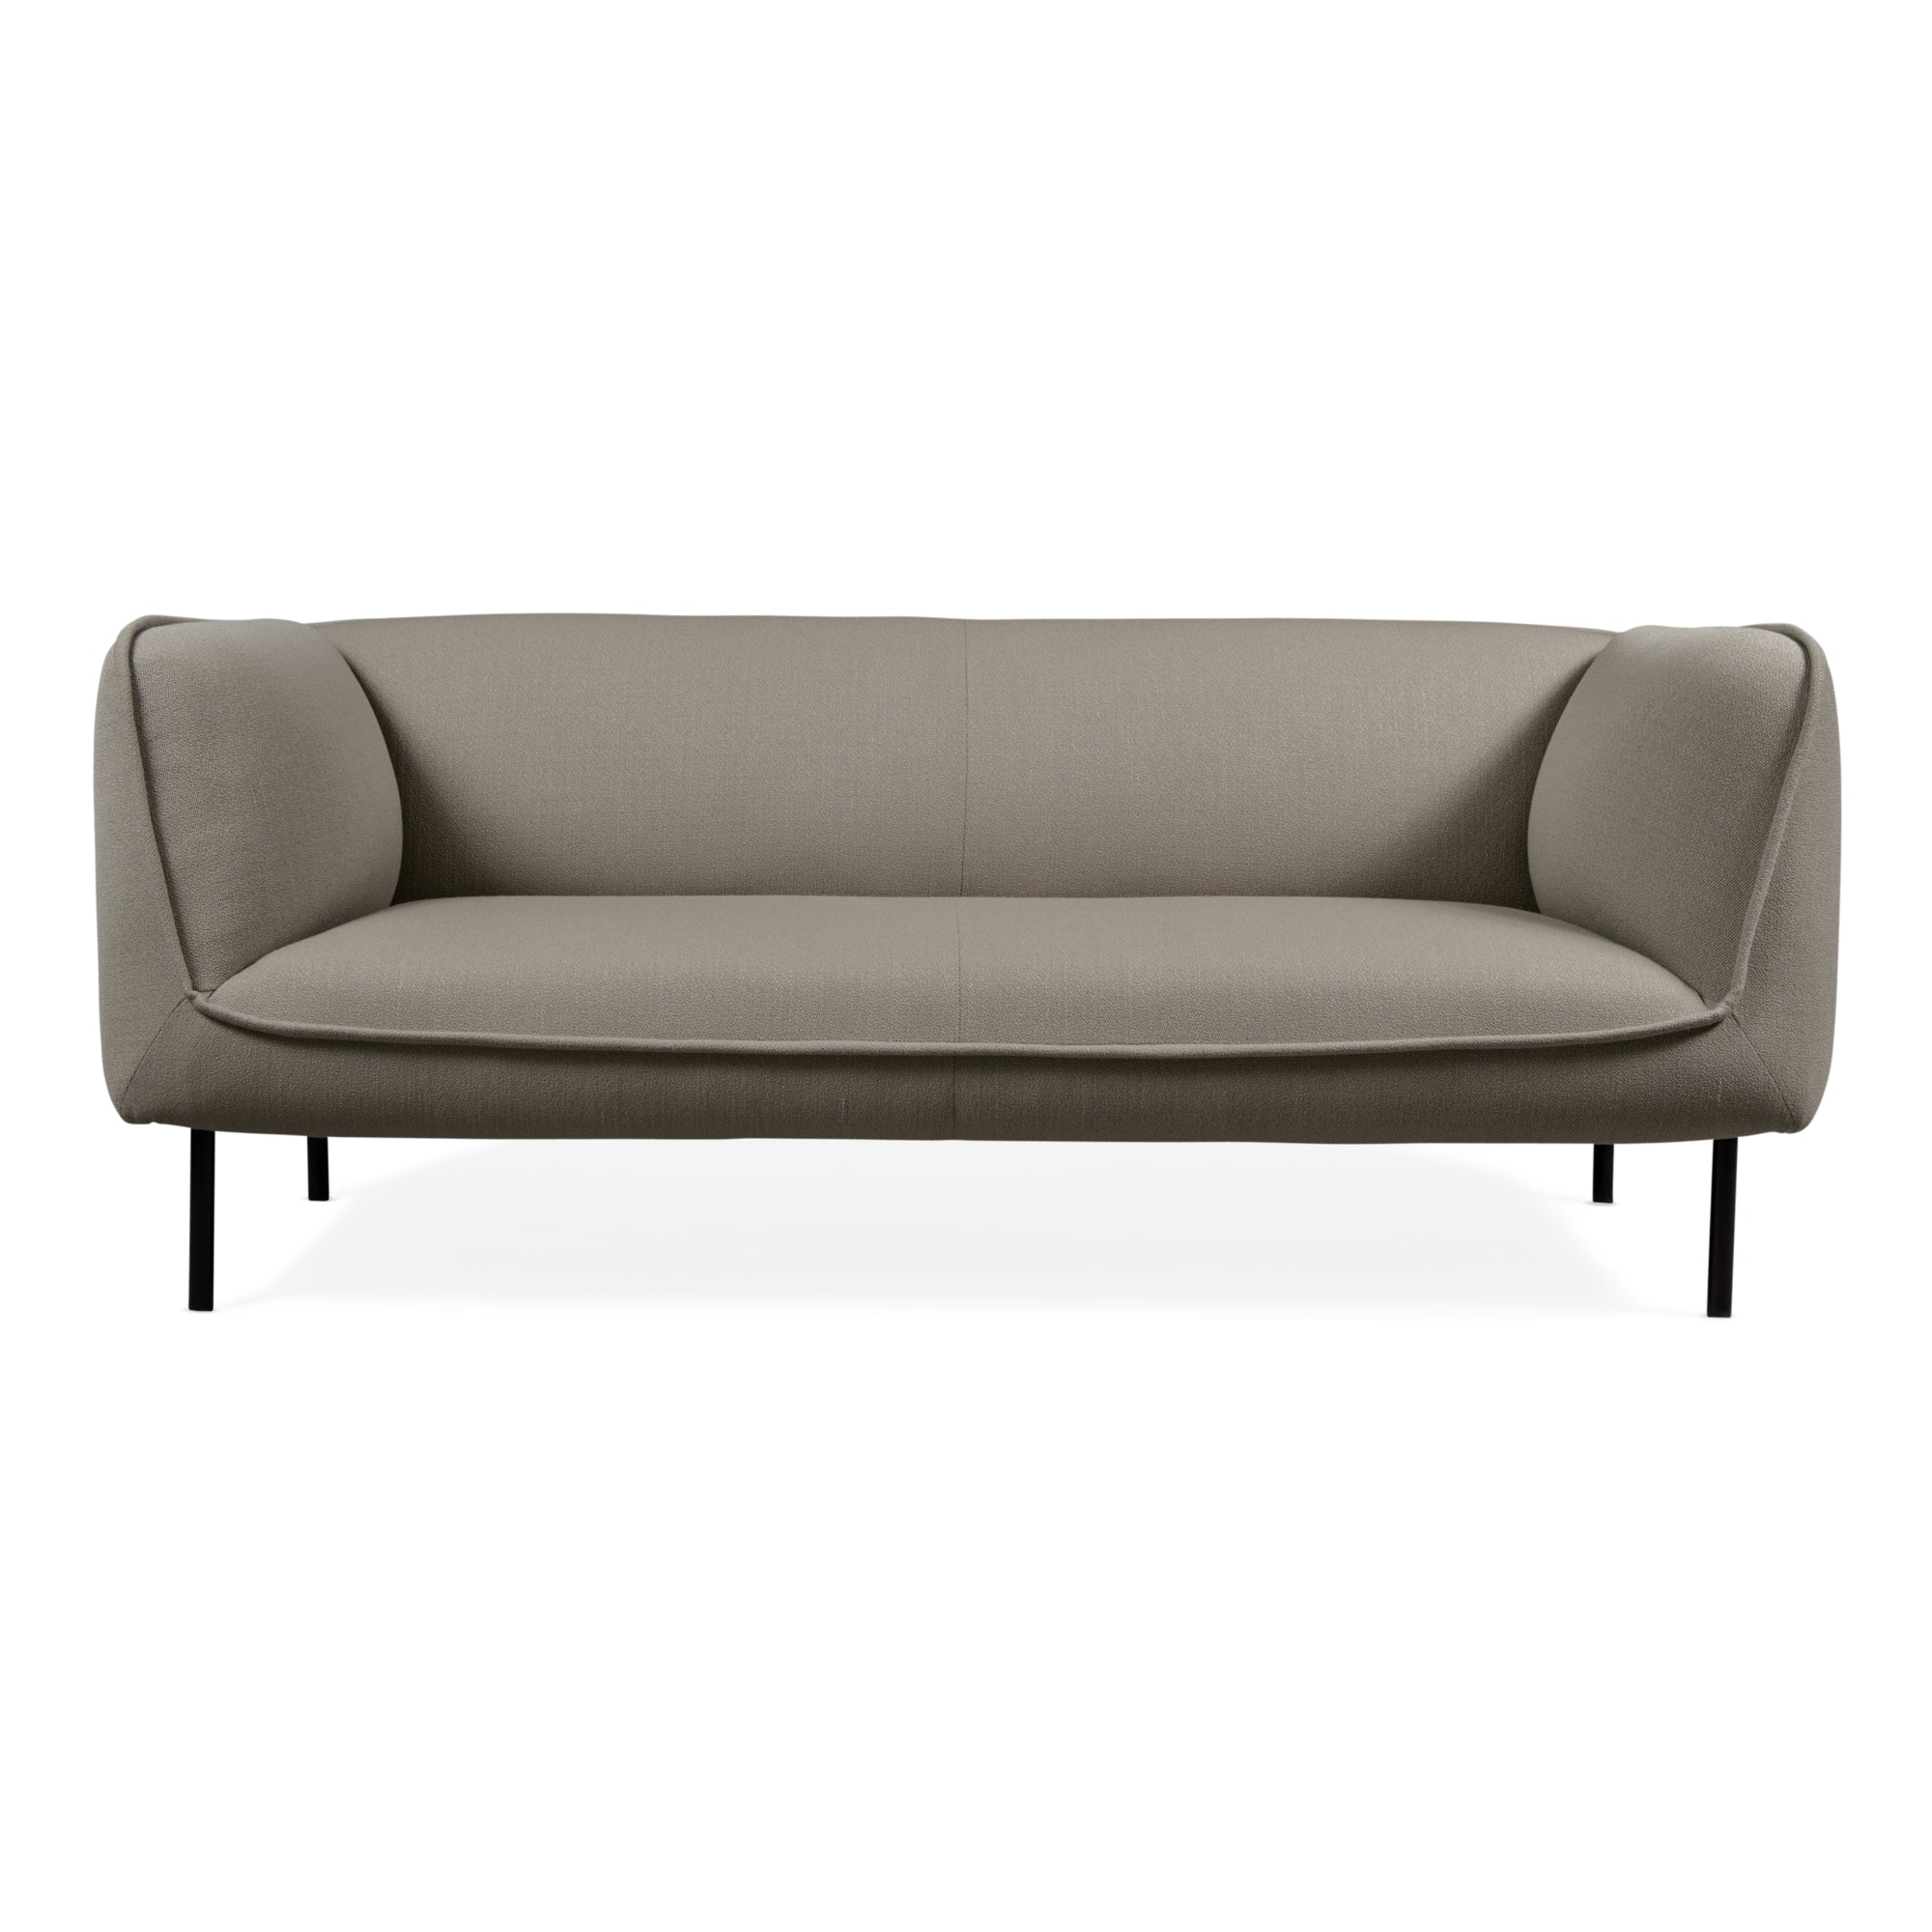 Edsbyn Gather 2 Seater Sofa